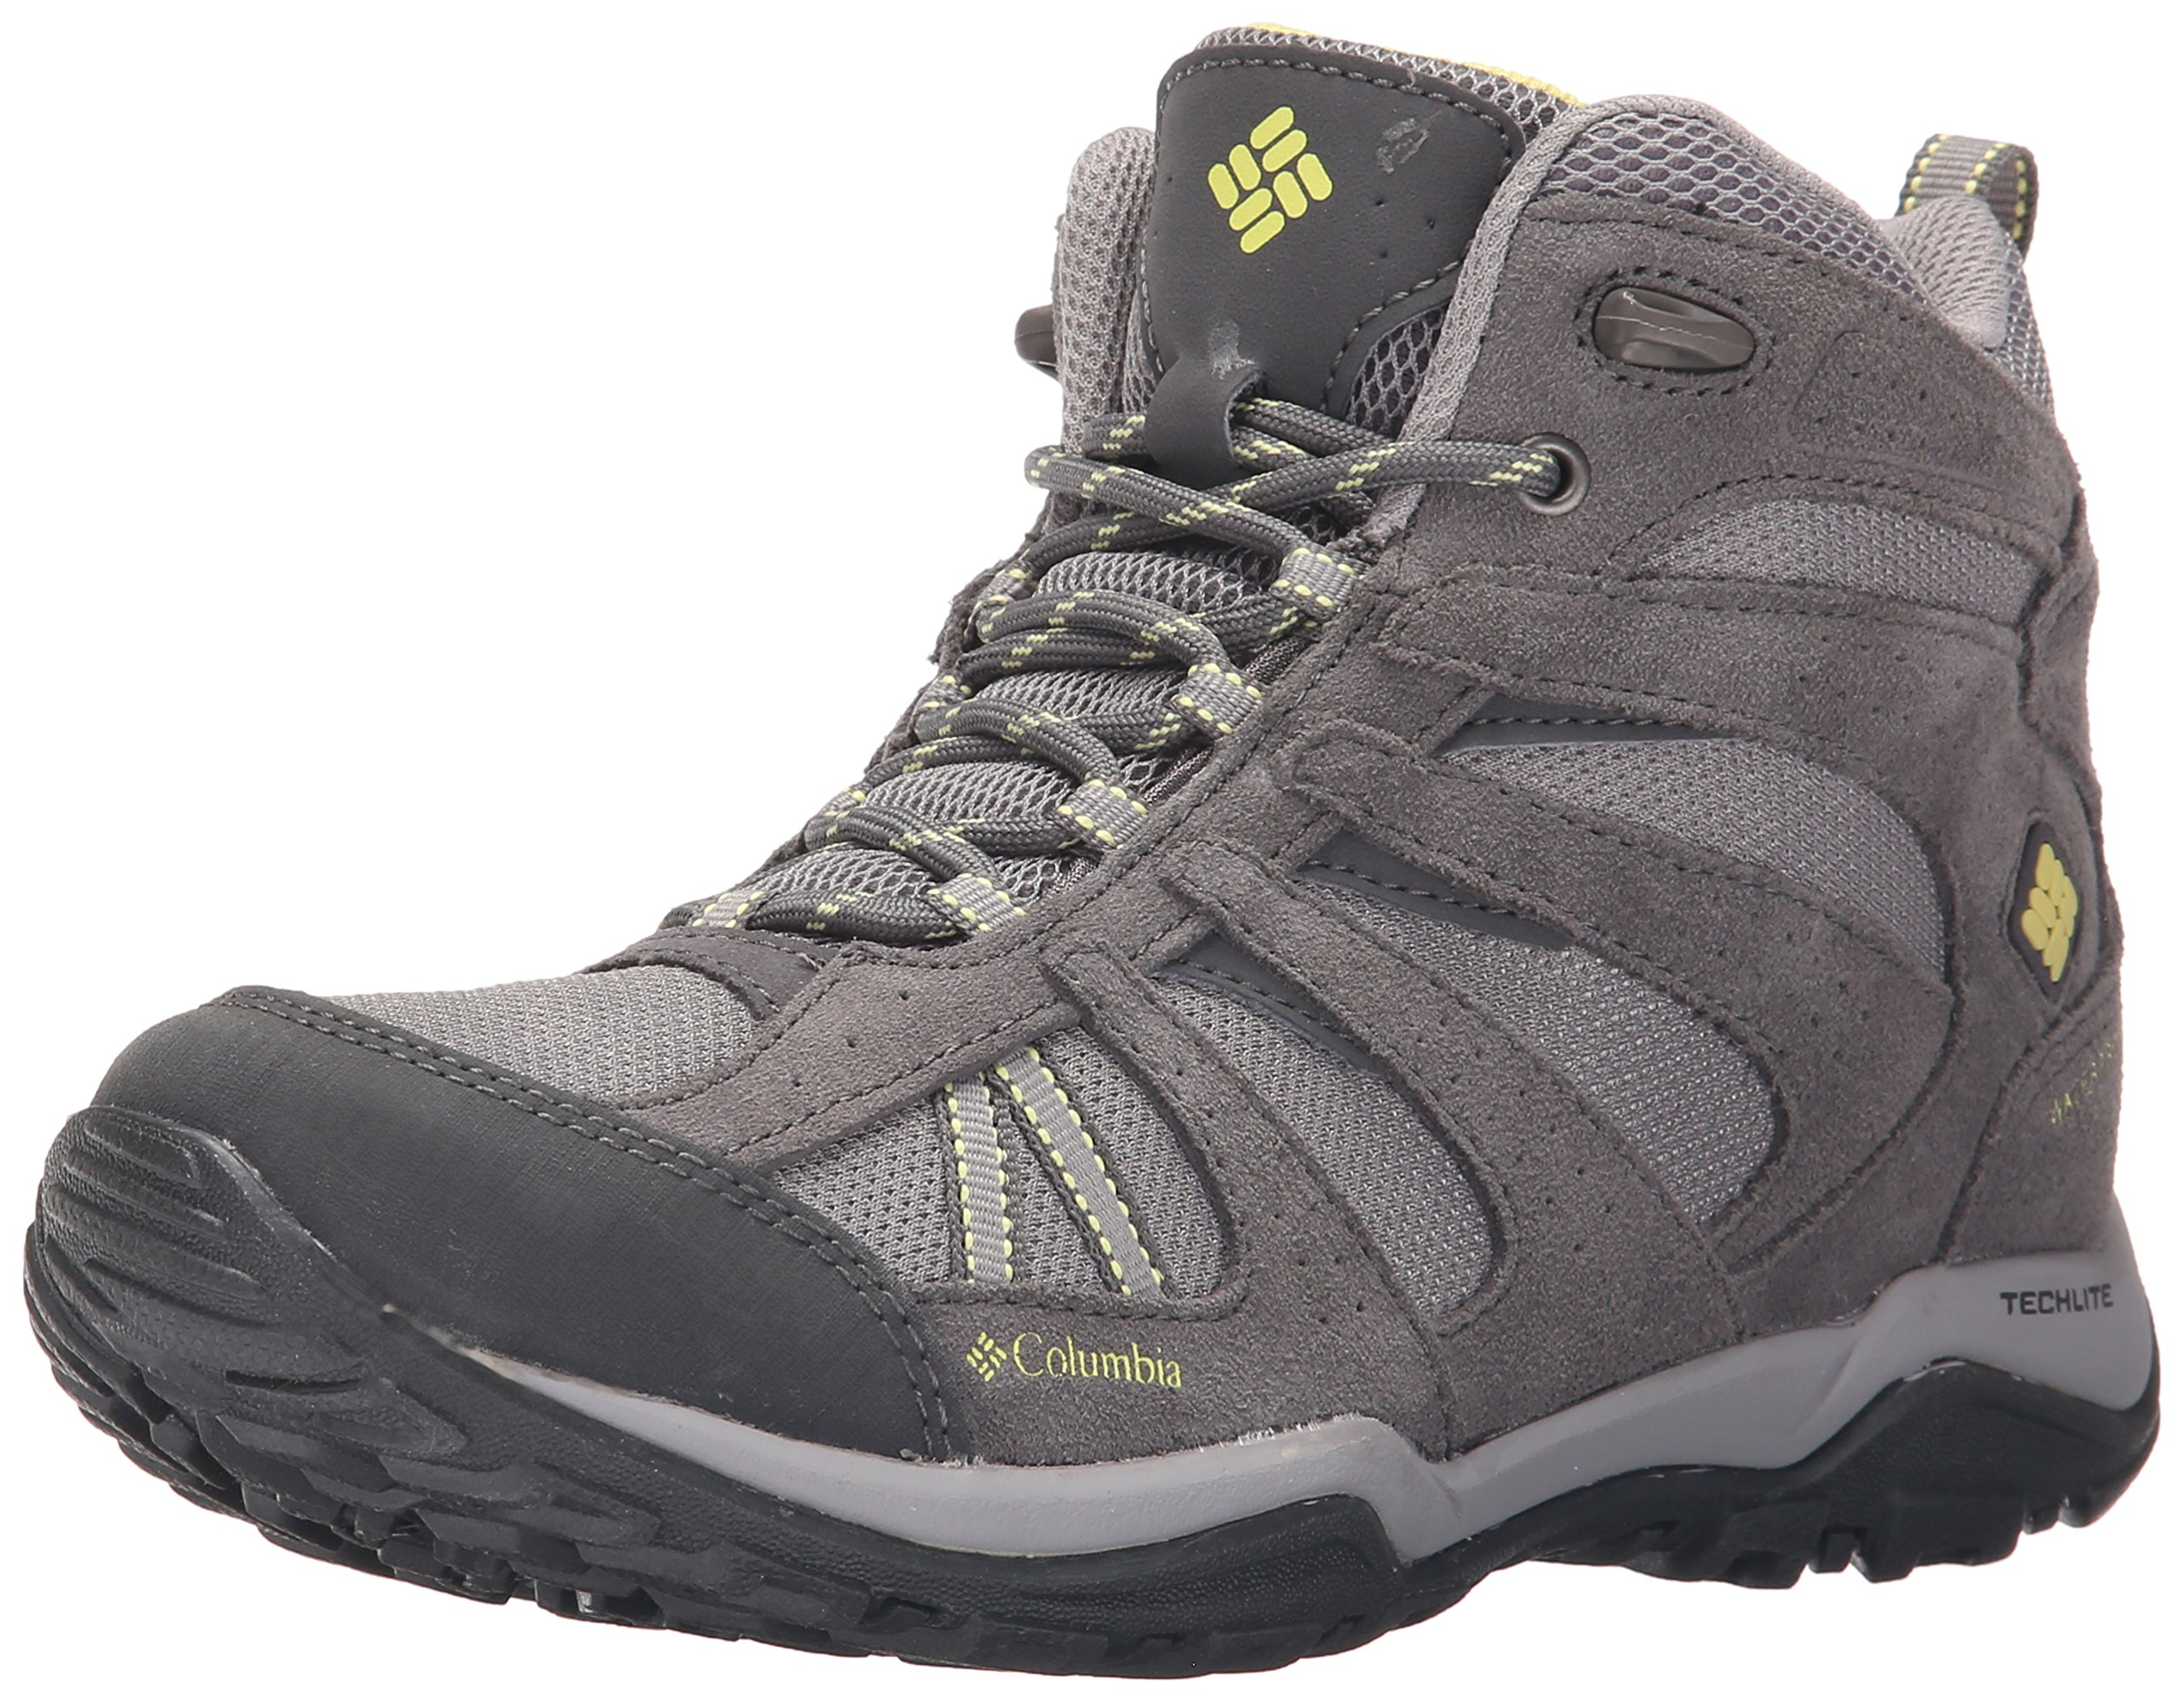 Columbia Women's Dakota Drifter MID Waterproof Hiking Boot, Light Grey, Sunnyside, 12 B US by Columbia